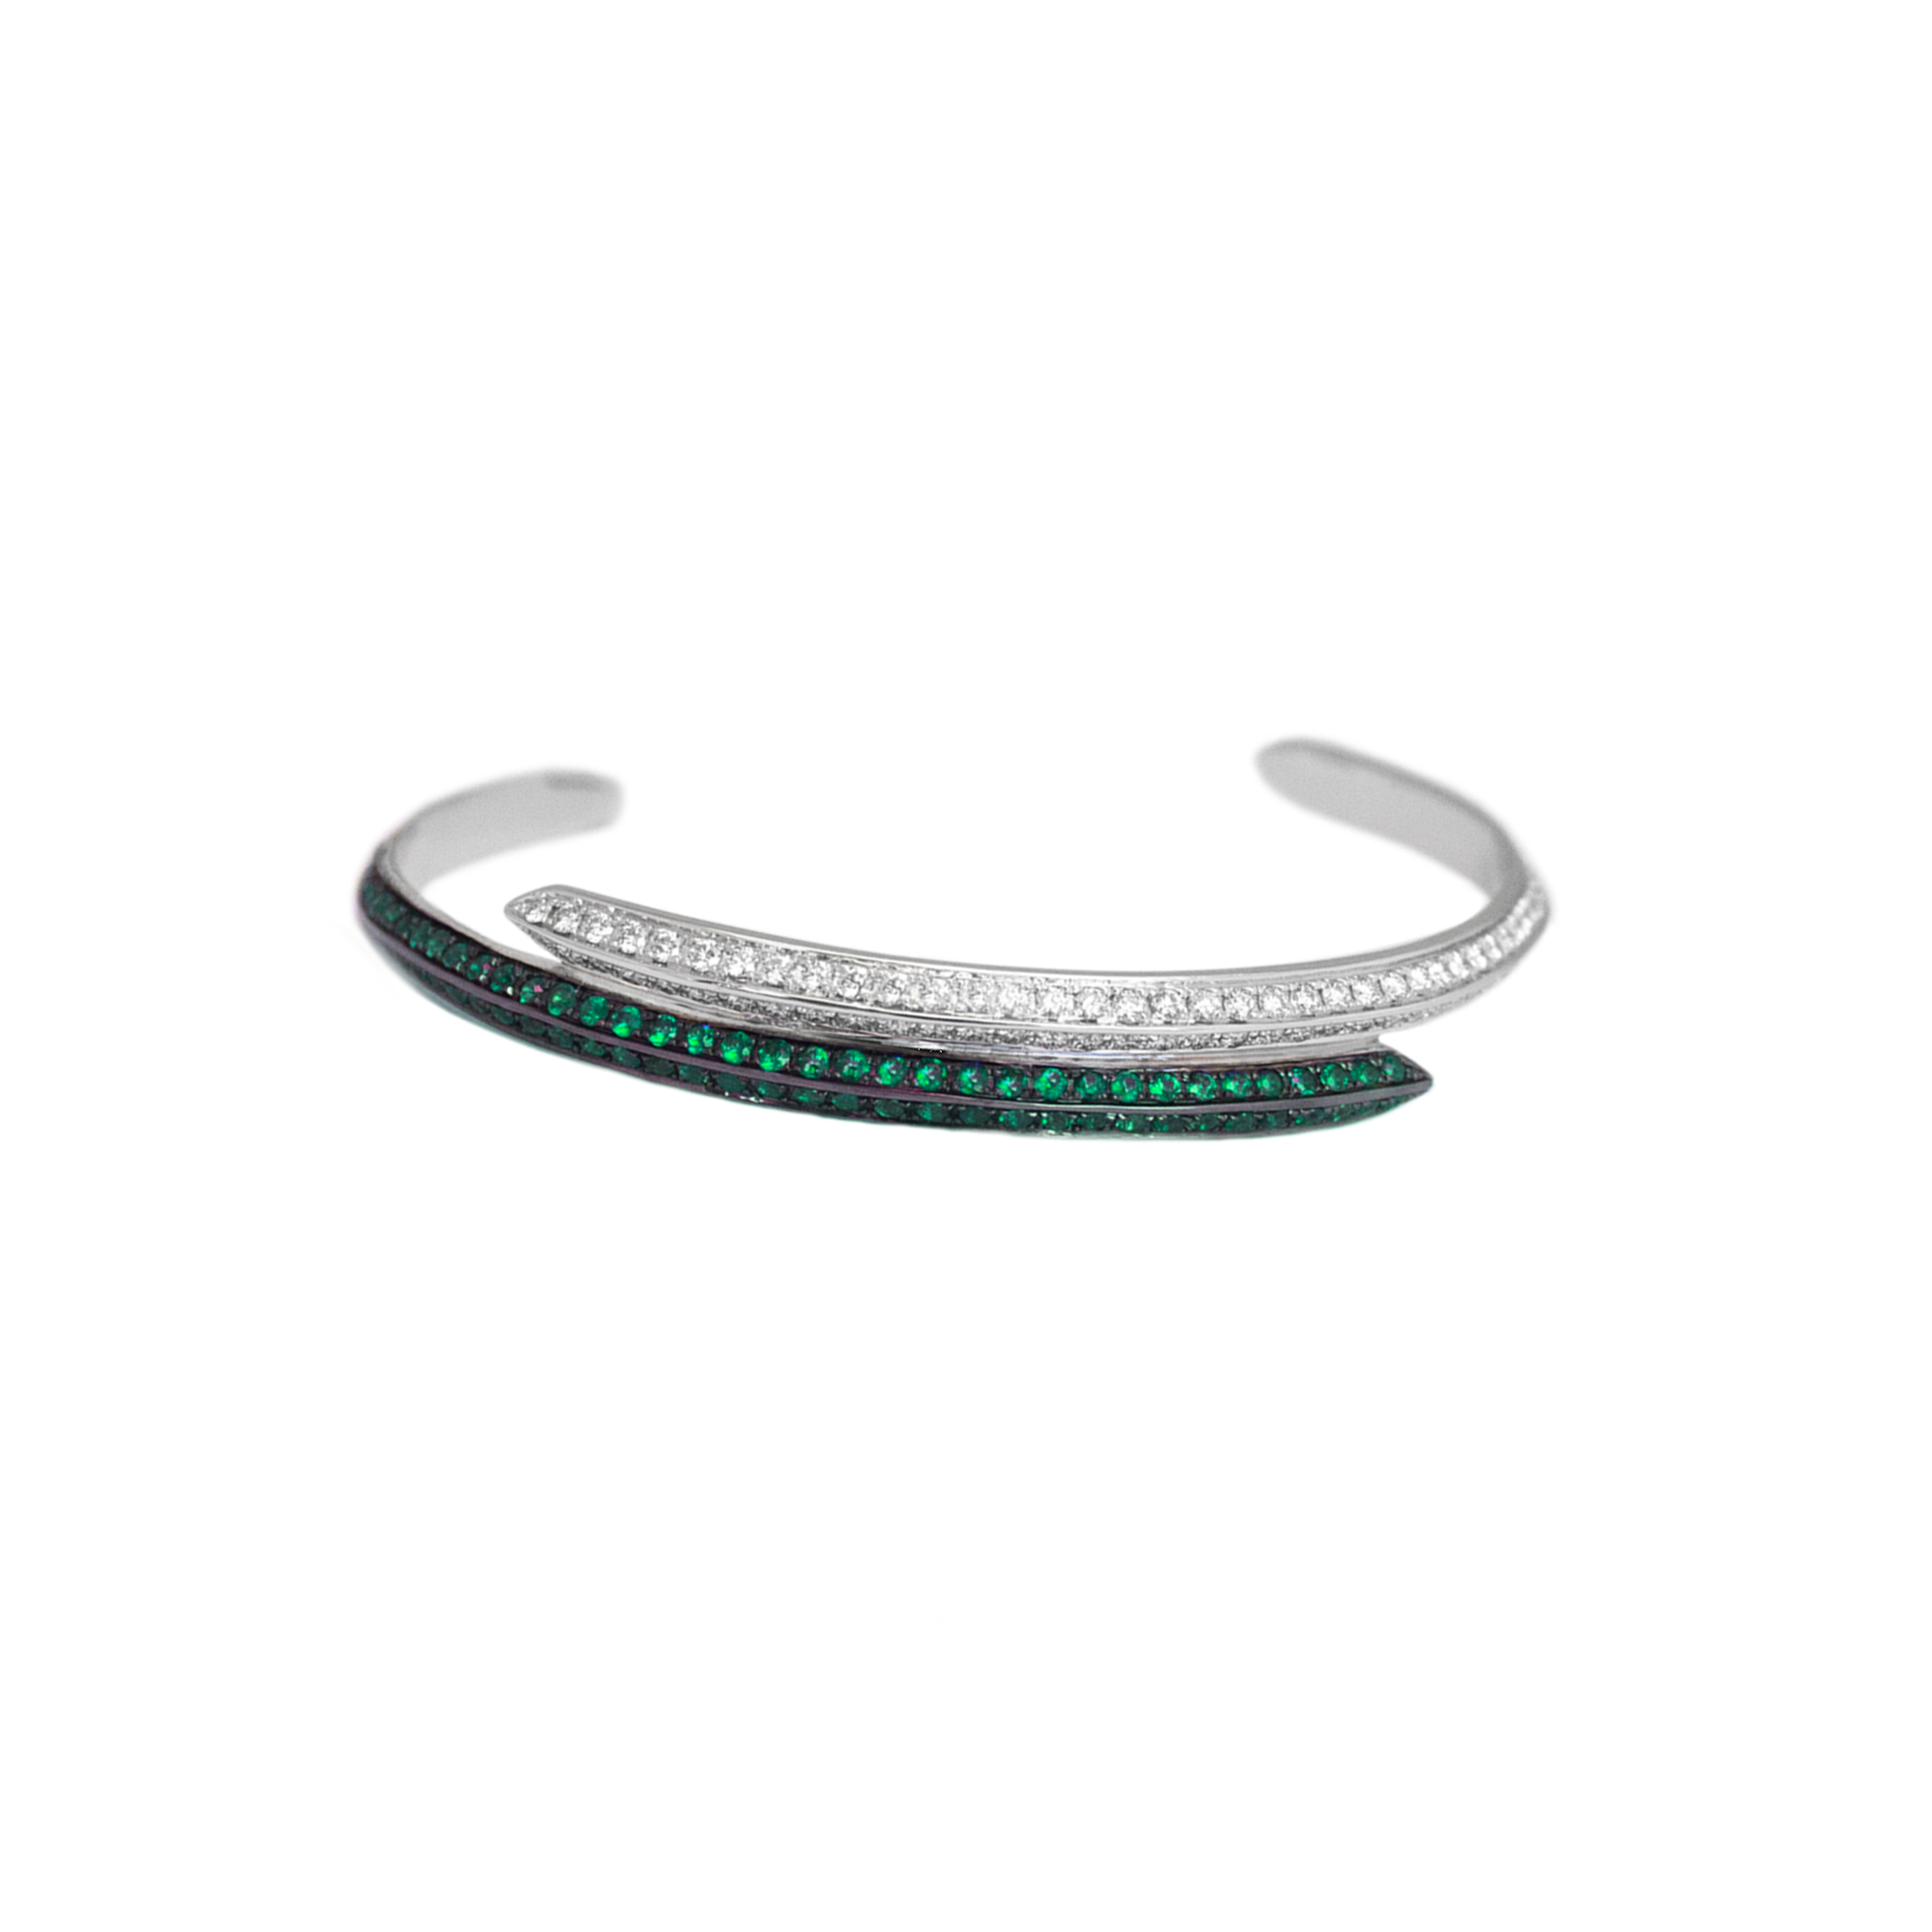 Ralph Masri Modernist Emerald Bracelet - Bracelets - Broken English Jewelry